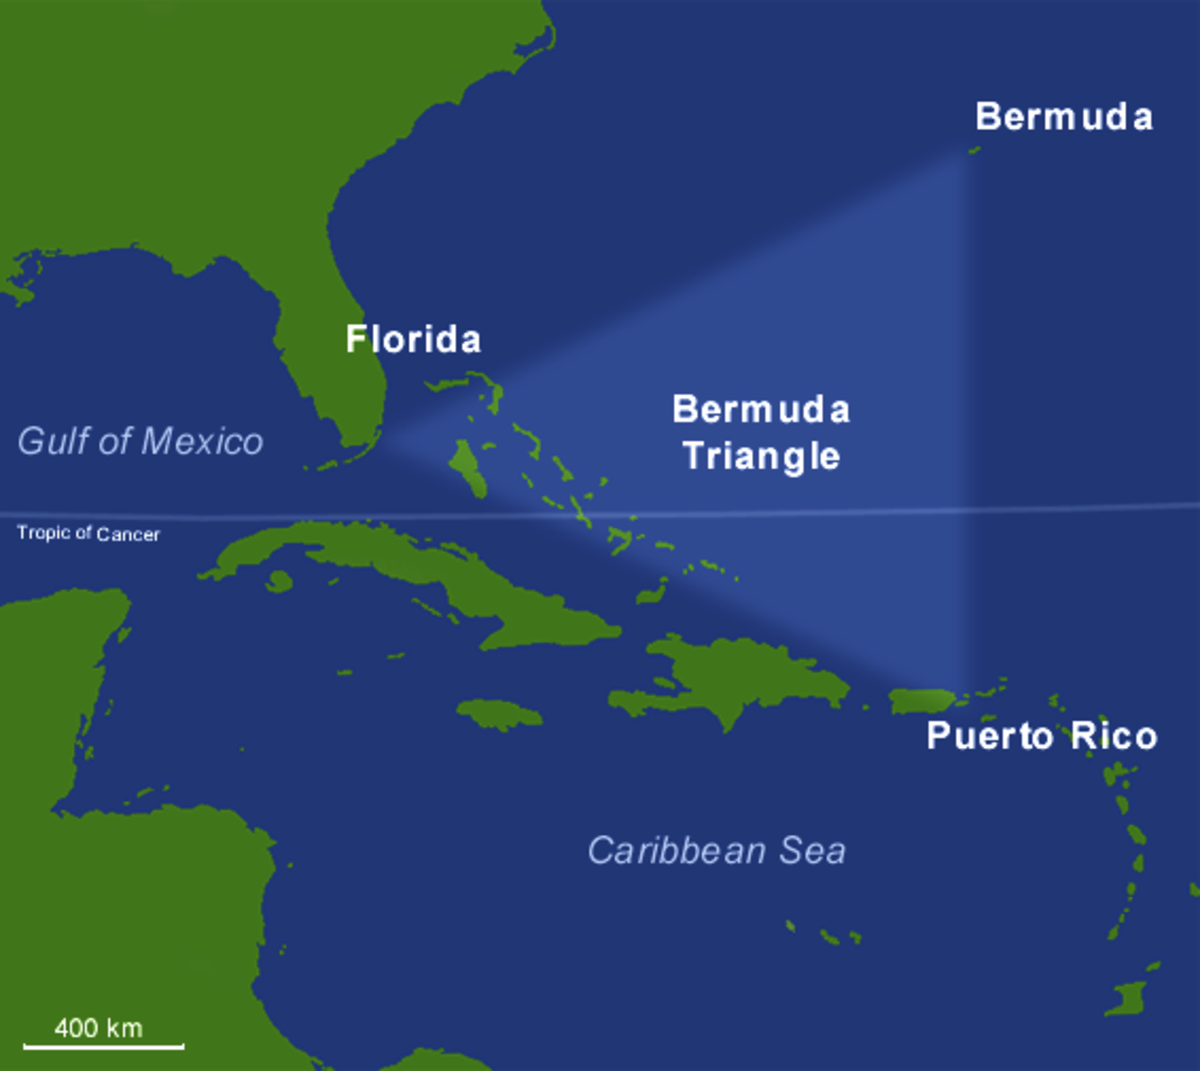 Info and Legends on the Bermuda Triangle